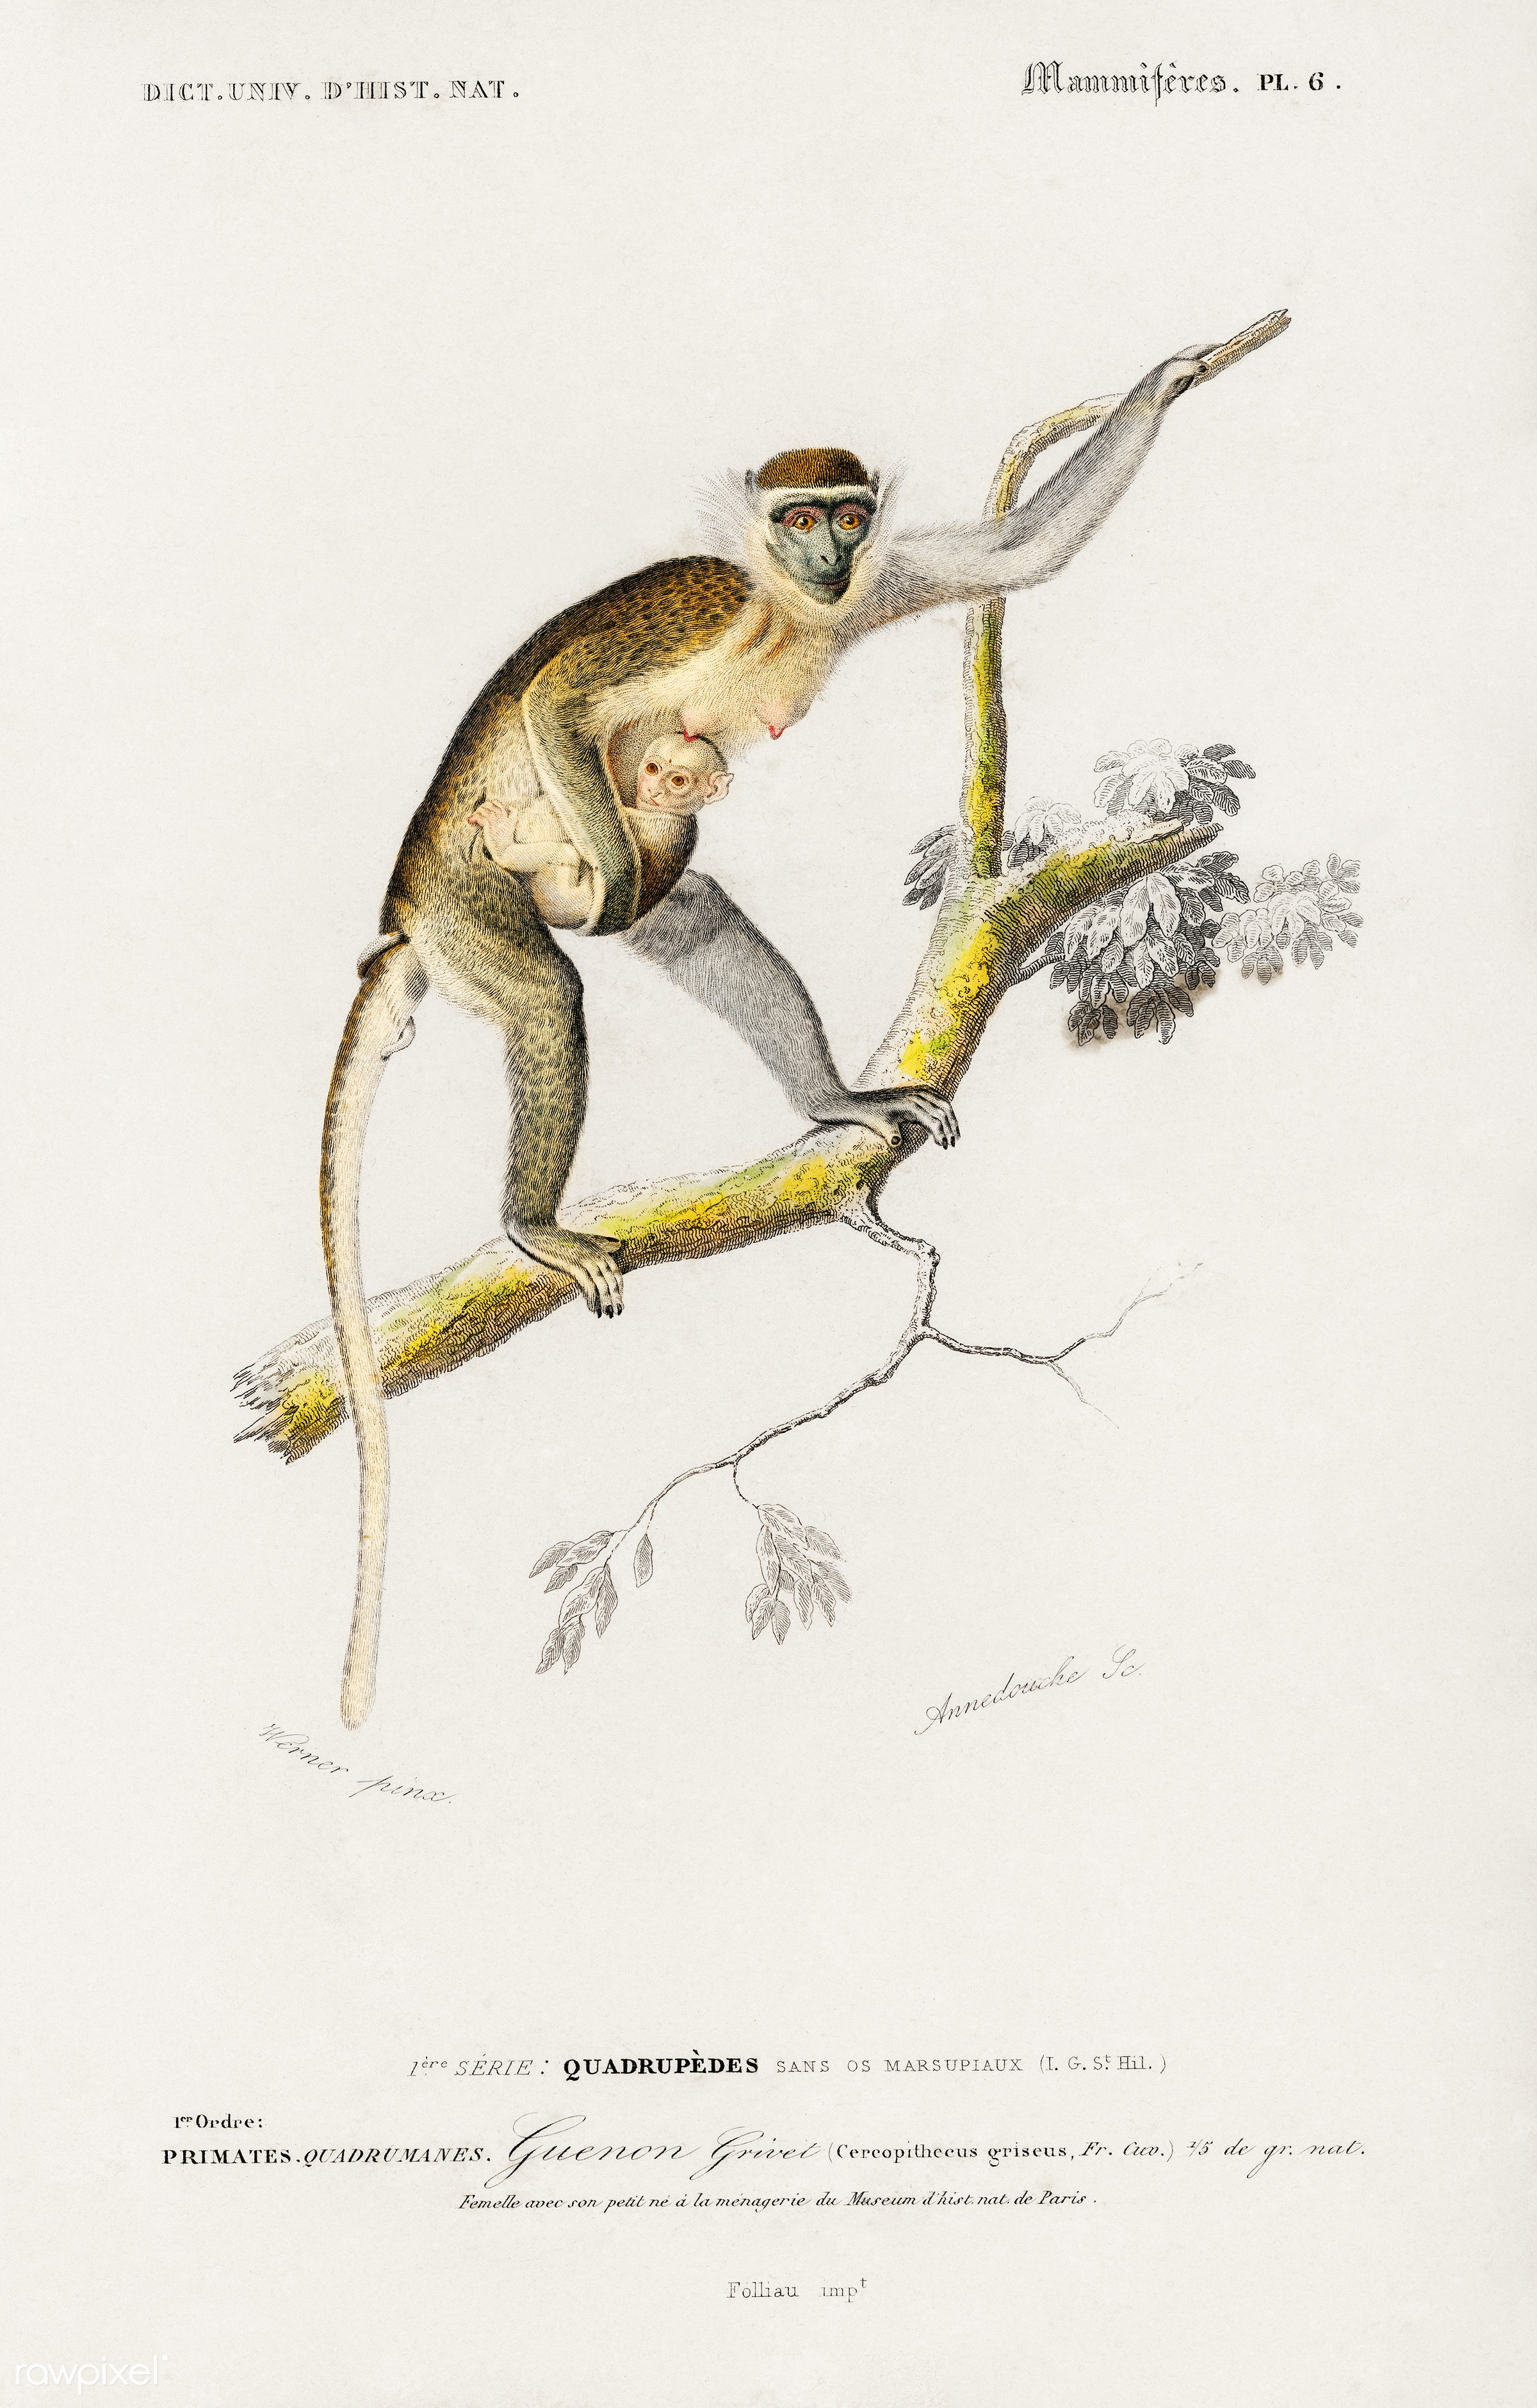 Cercopithecus griseus (Guenon Grivet) illustrated by Charles Dessalines D' Orbigny (1806-1876). Digitally enhanced from...